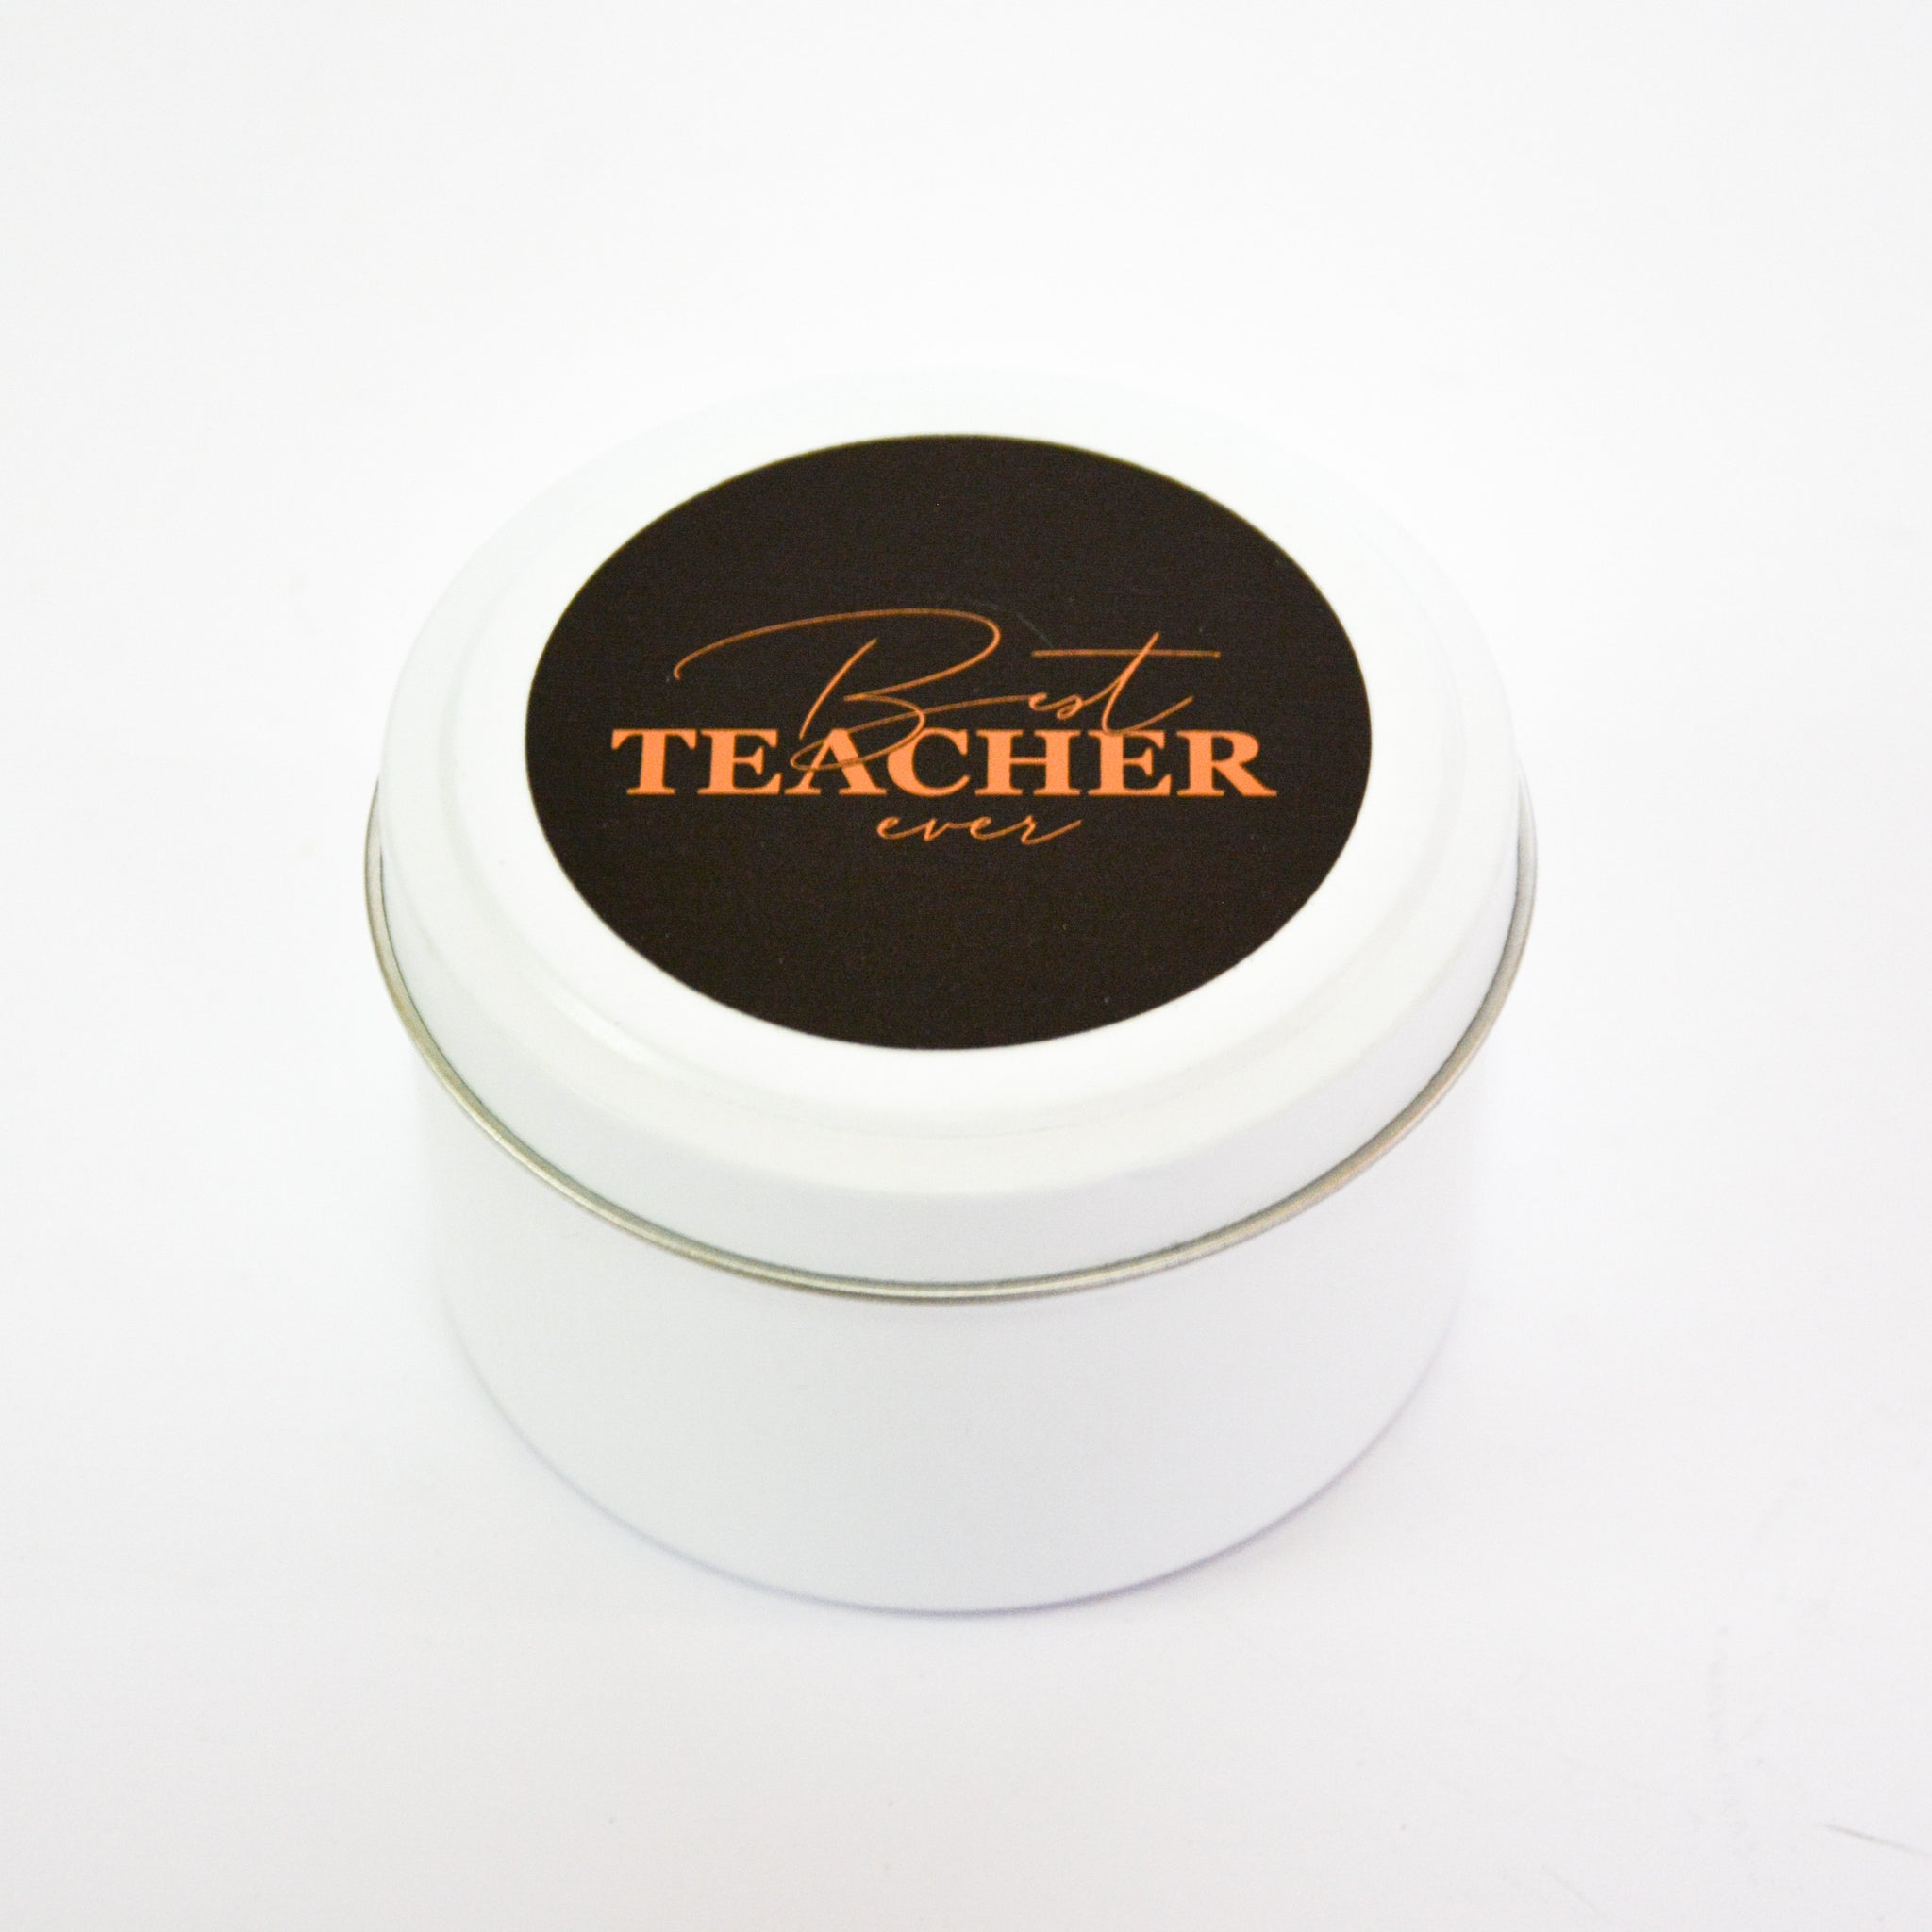 Best Teacher Ever Scented Candle Tin